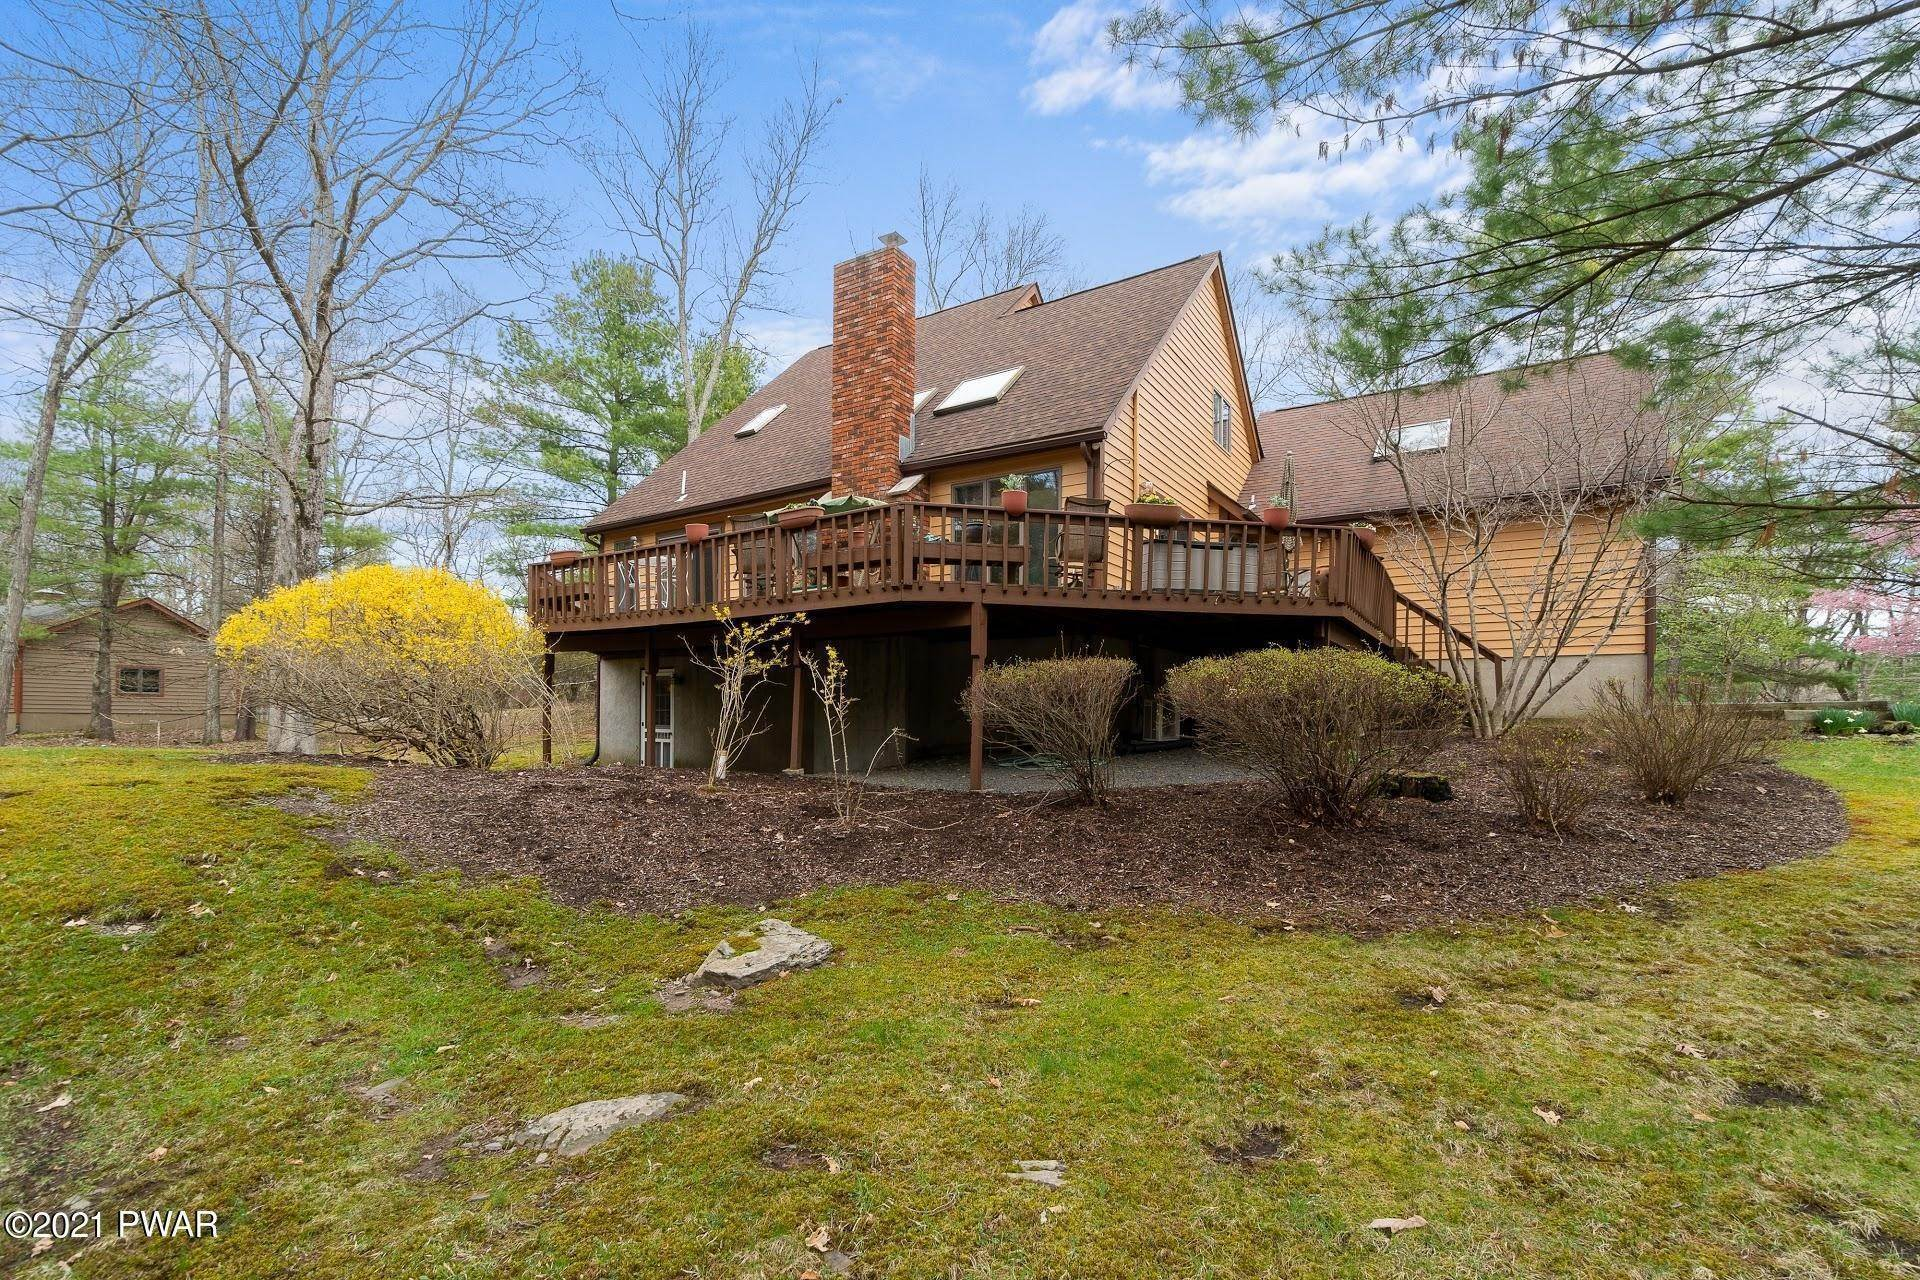 Single Family Homes for Sale at 103 Vesuvius Ln Milford, Pennsylvania 18337 United States